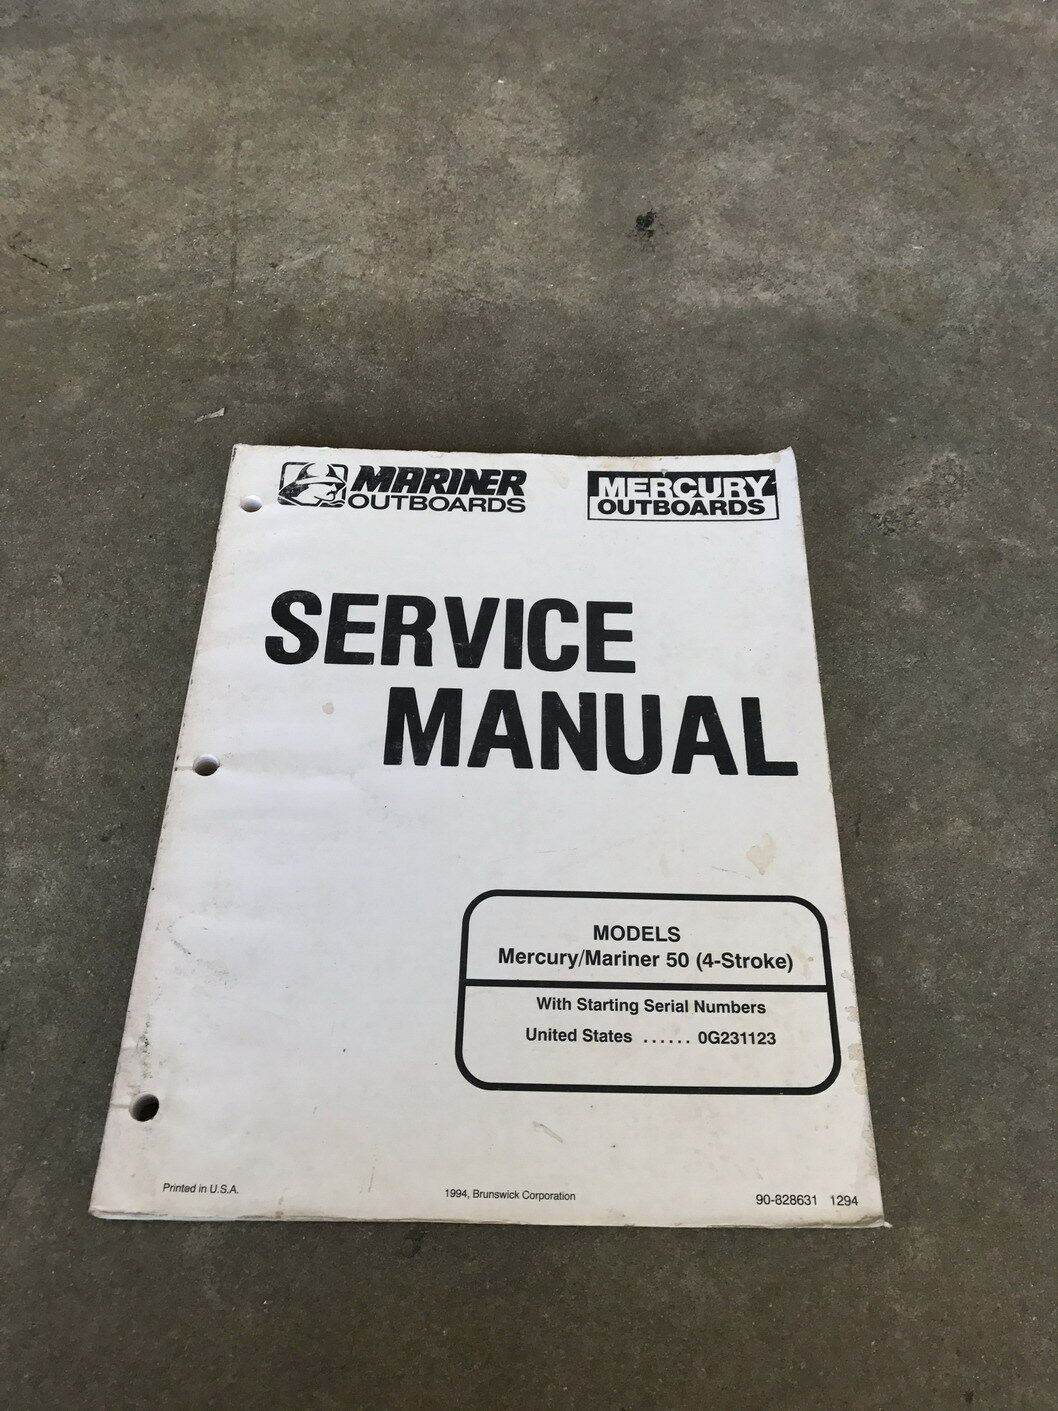 1 of 2Only 1 available Oem 1996 Mariner Outboards Mercury 50 4 Stroke  Engine Service Manual 90-828631